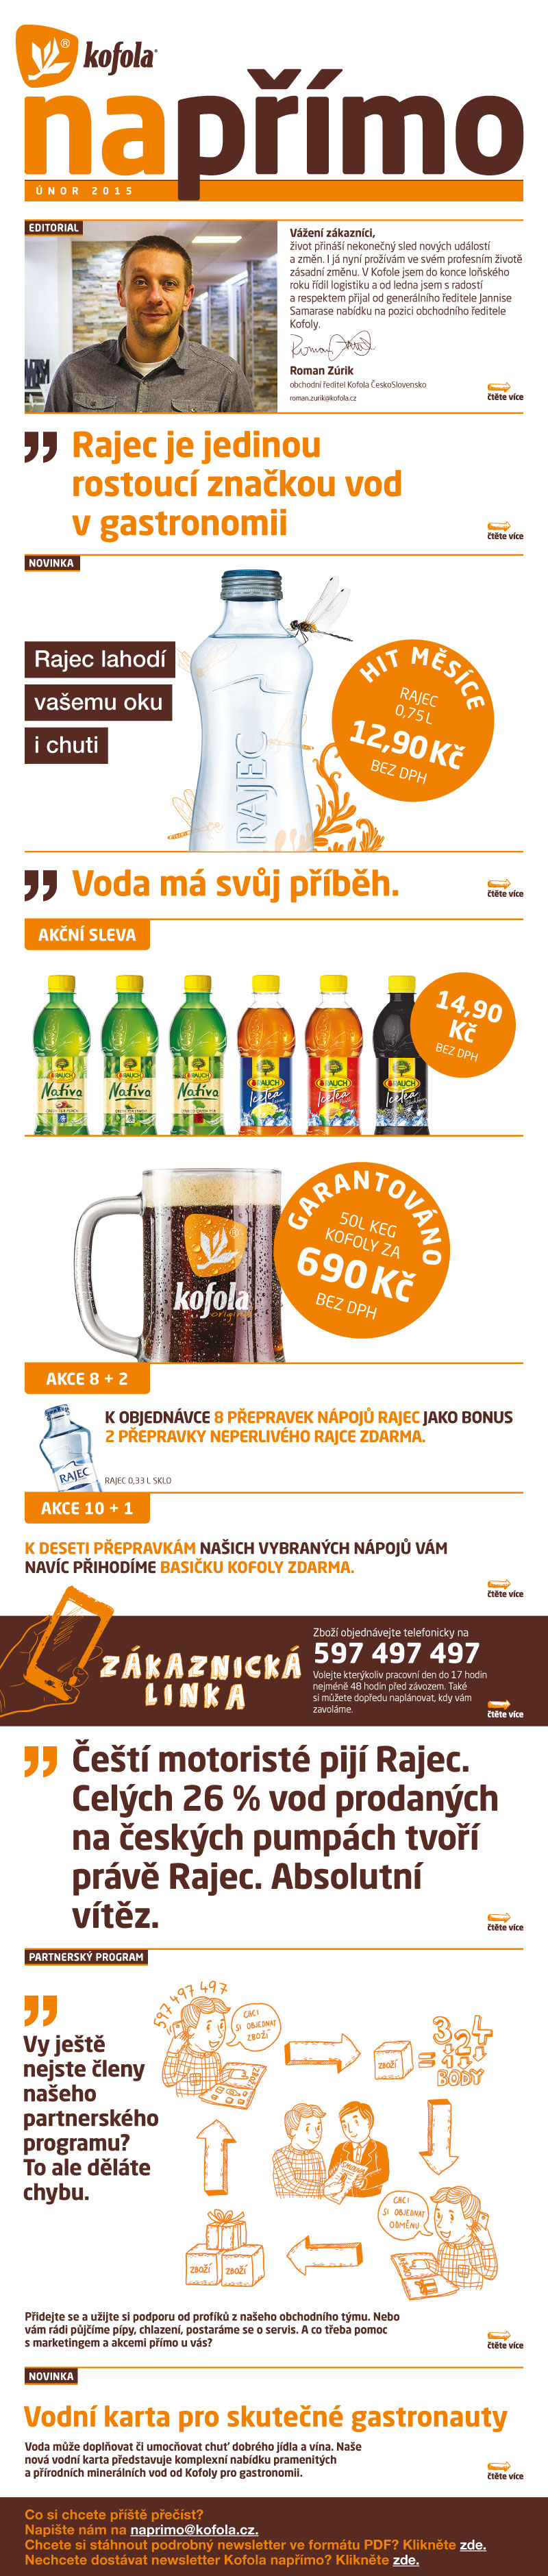 Kofola-newsletter-02